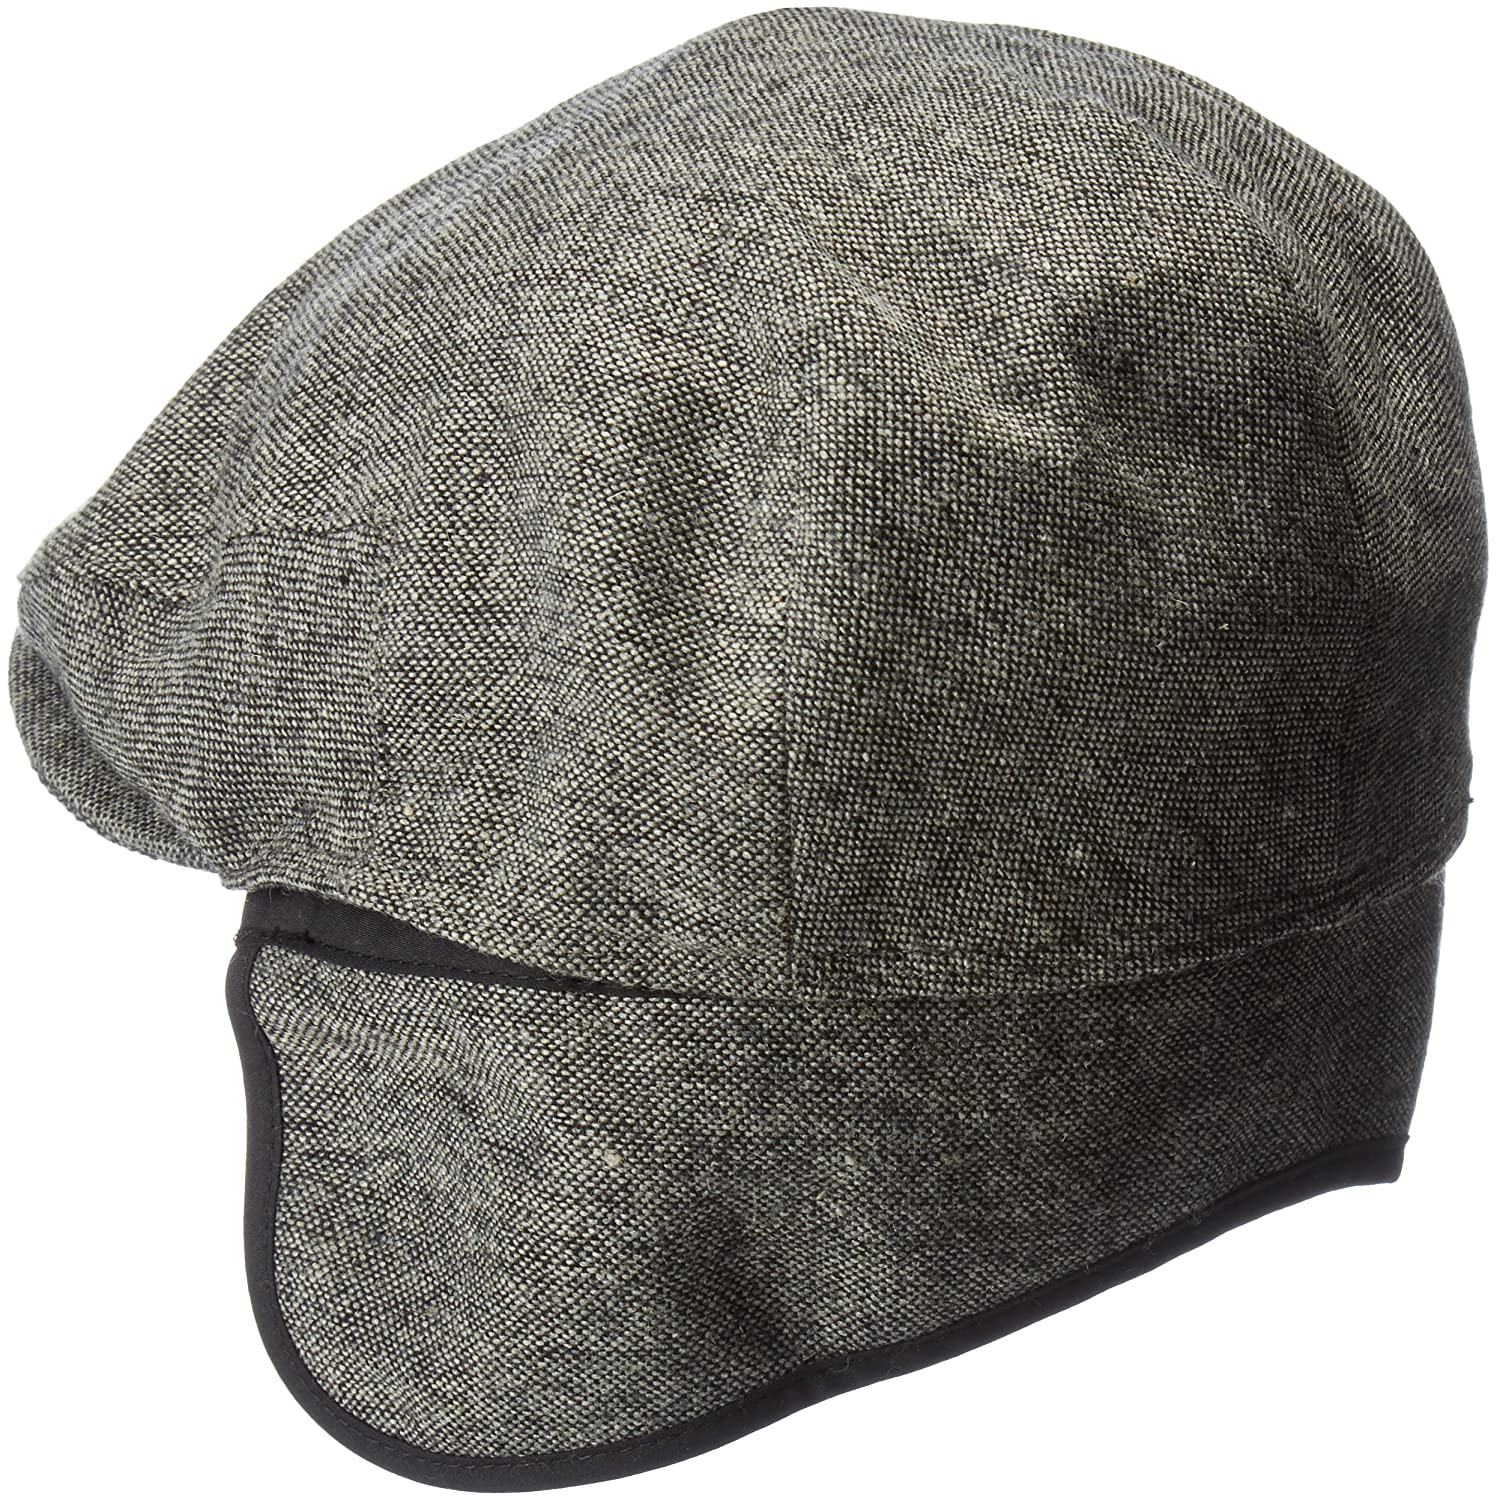 11846b56a1f33 Country Gentleman Men s Ainsley Flat Ivy Cap with Ear Laps at Amazon Men s  Clothing store